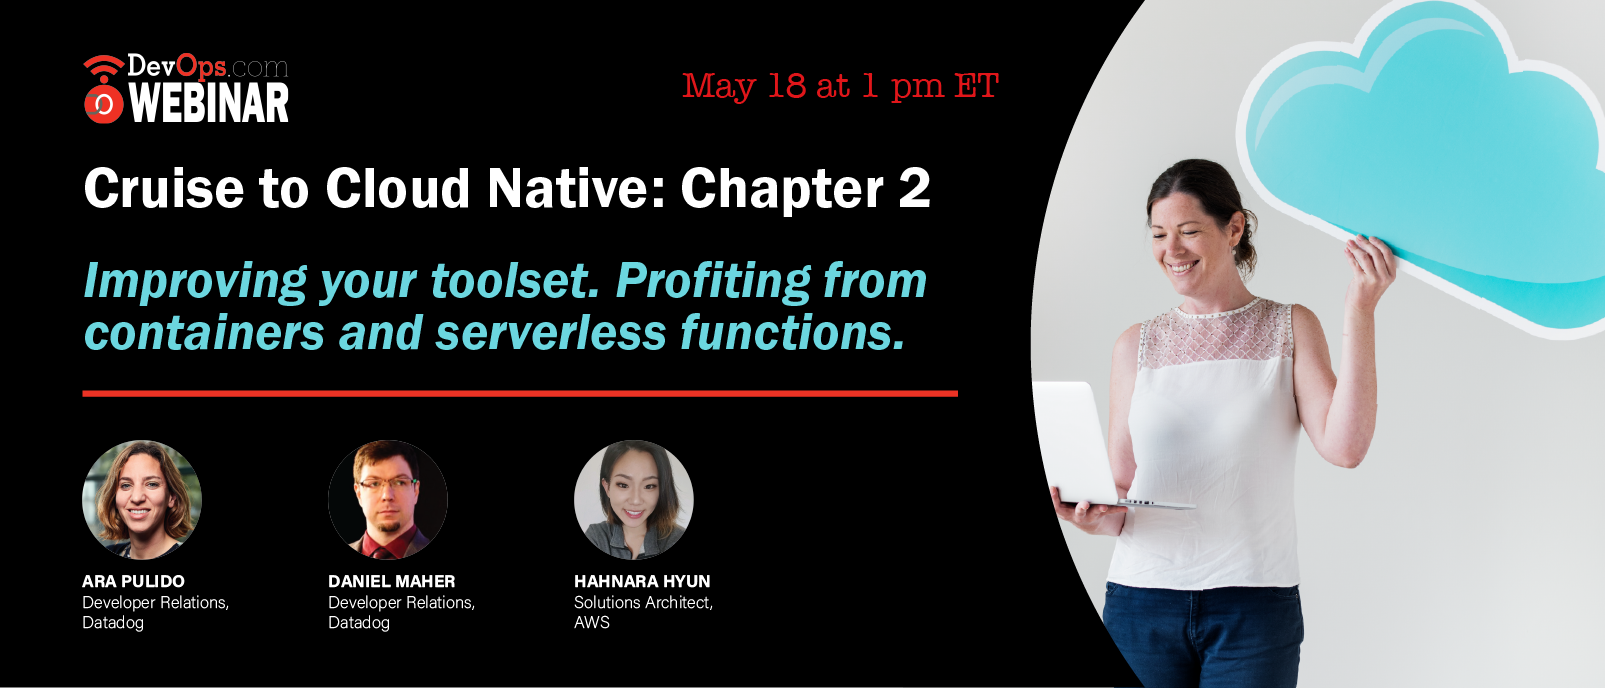 Cruise to Cloud Native: Chapter 2. Profiting from containers and serverless functions.